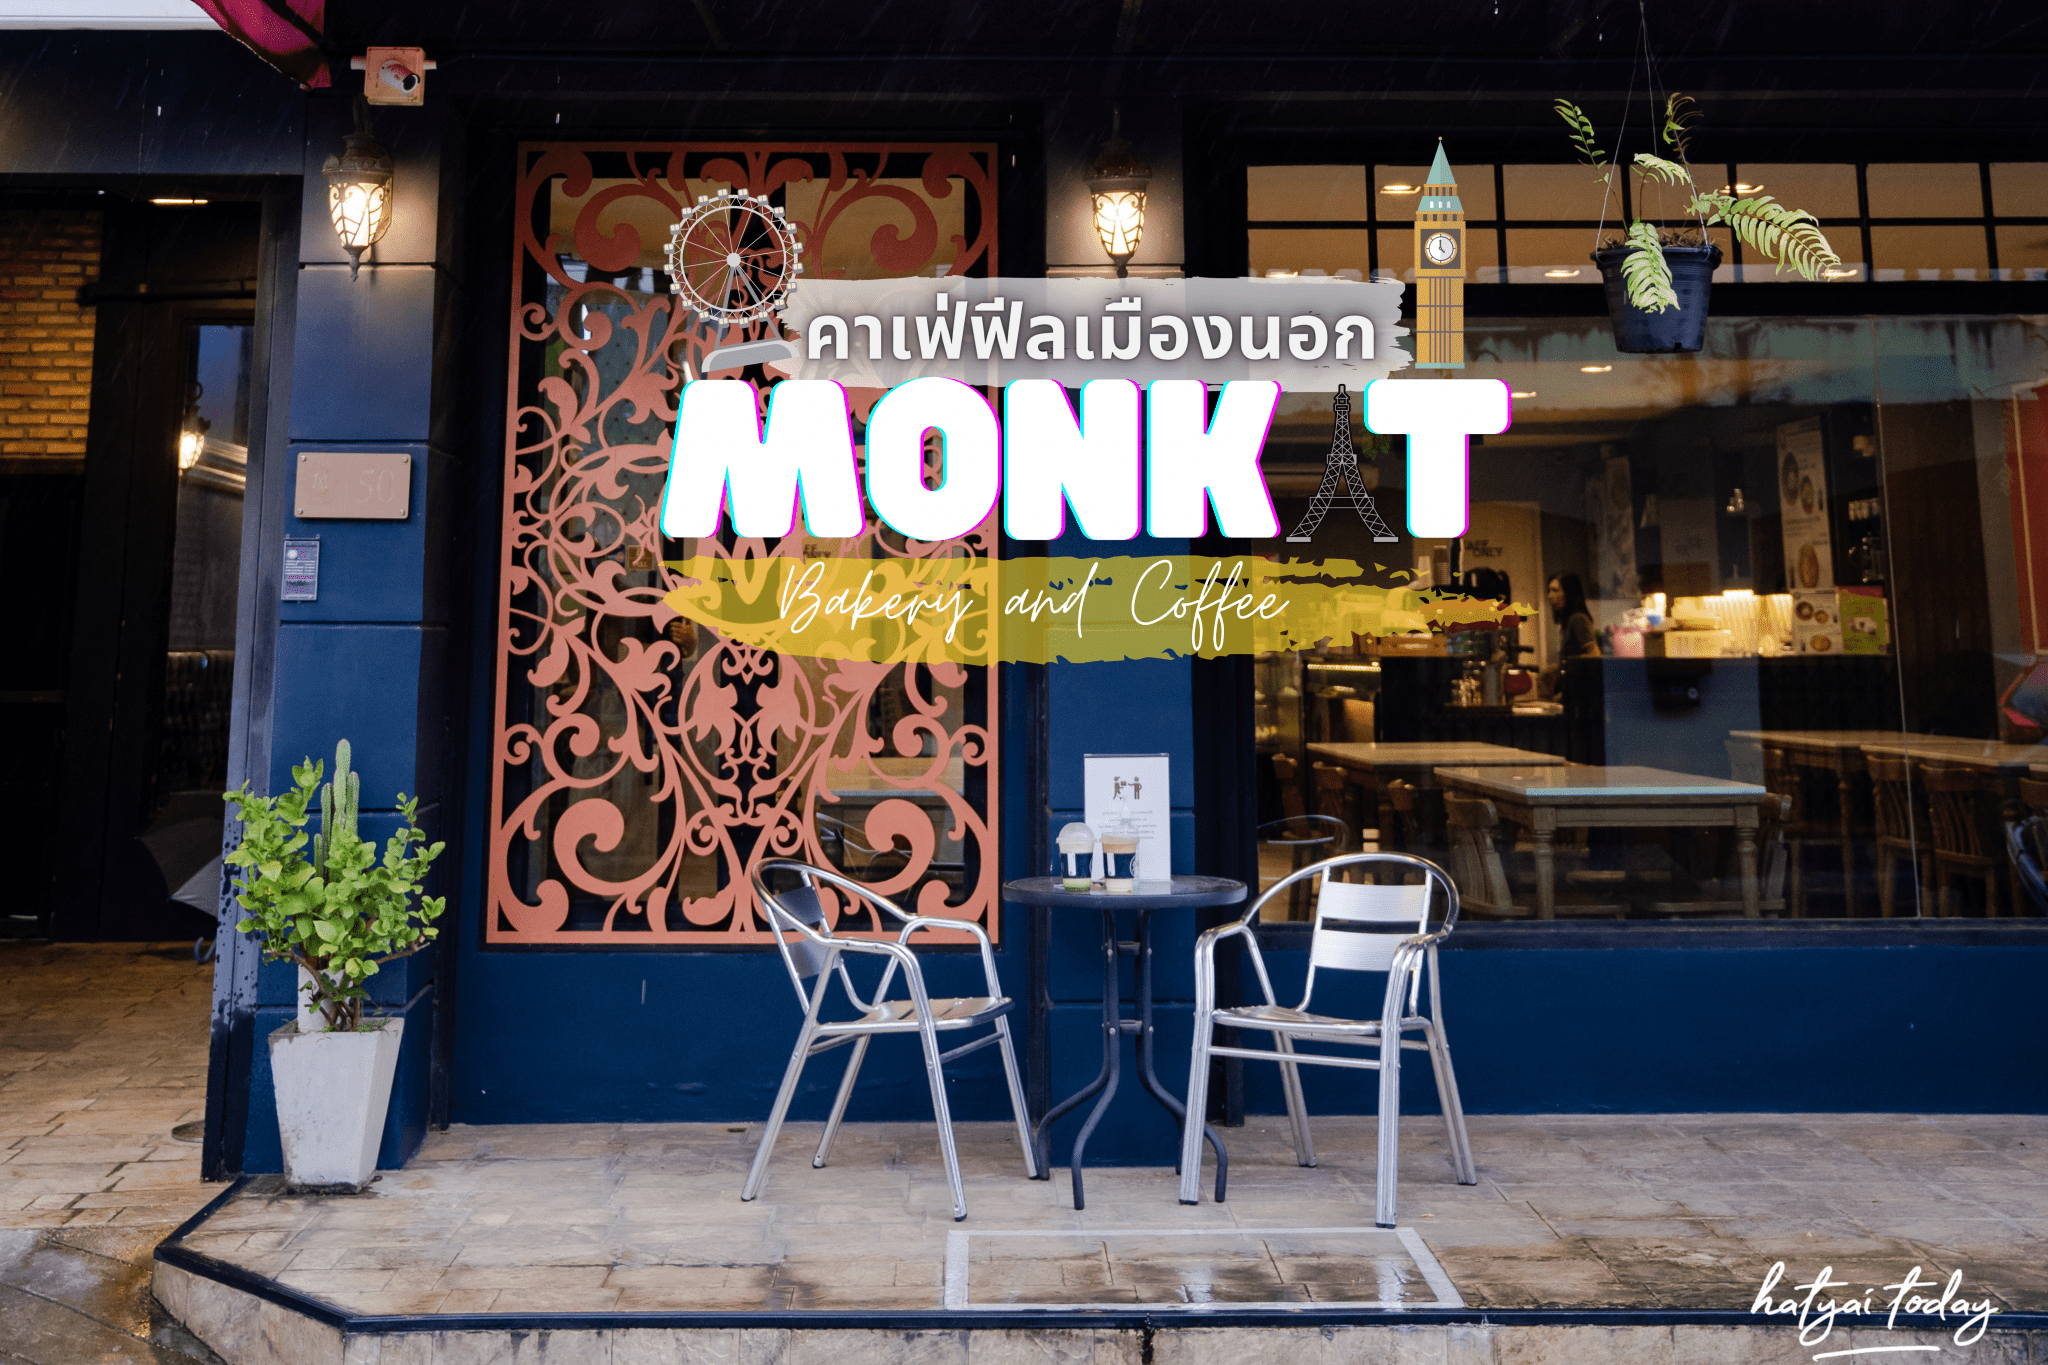 Monkit Bakery and Coffee